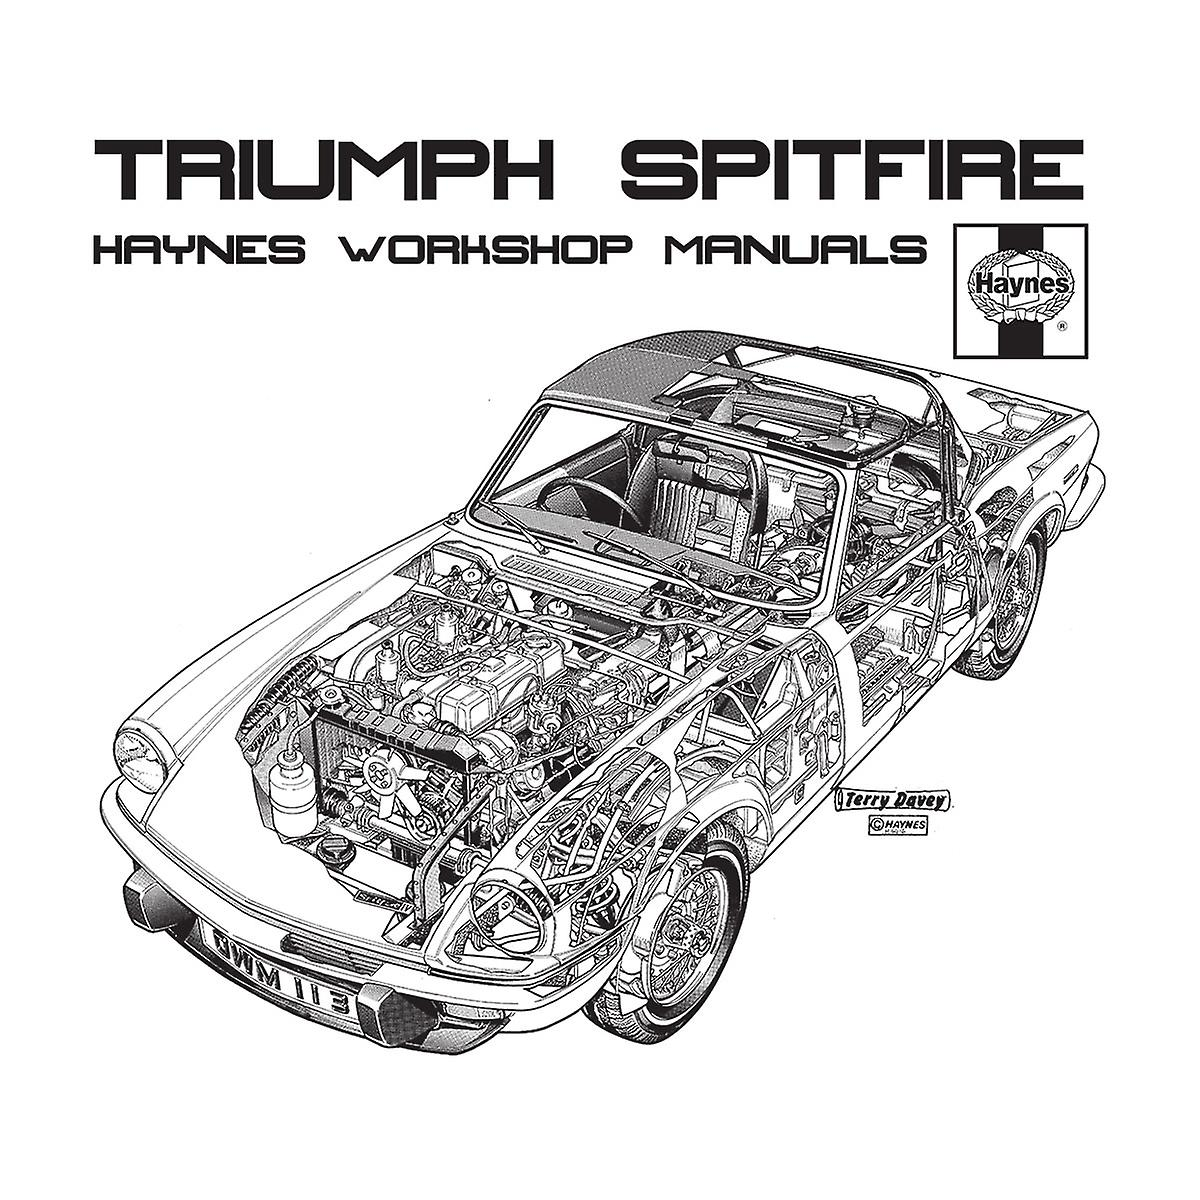 Haynes Owners Workshop Manual 0113 Triumph Spitfire Black Men's Baseball Long Sleeved T-Shirt